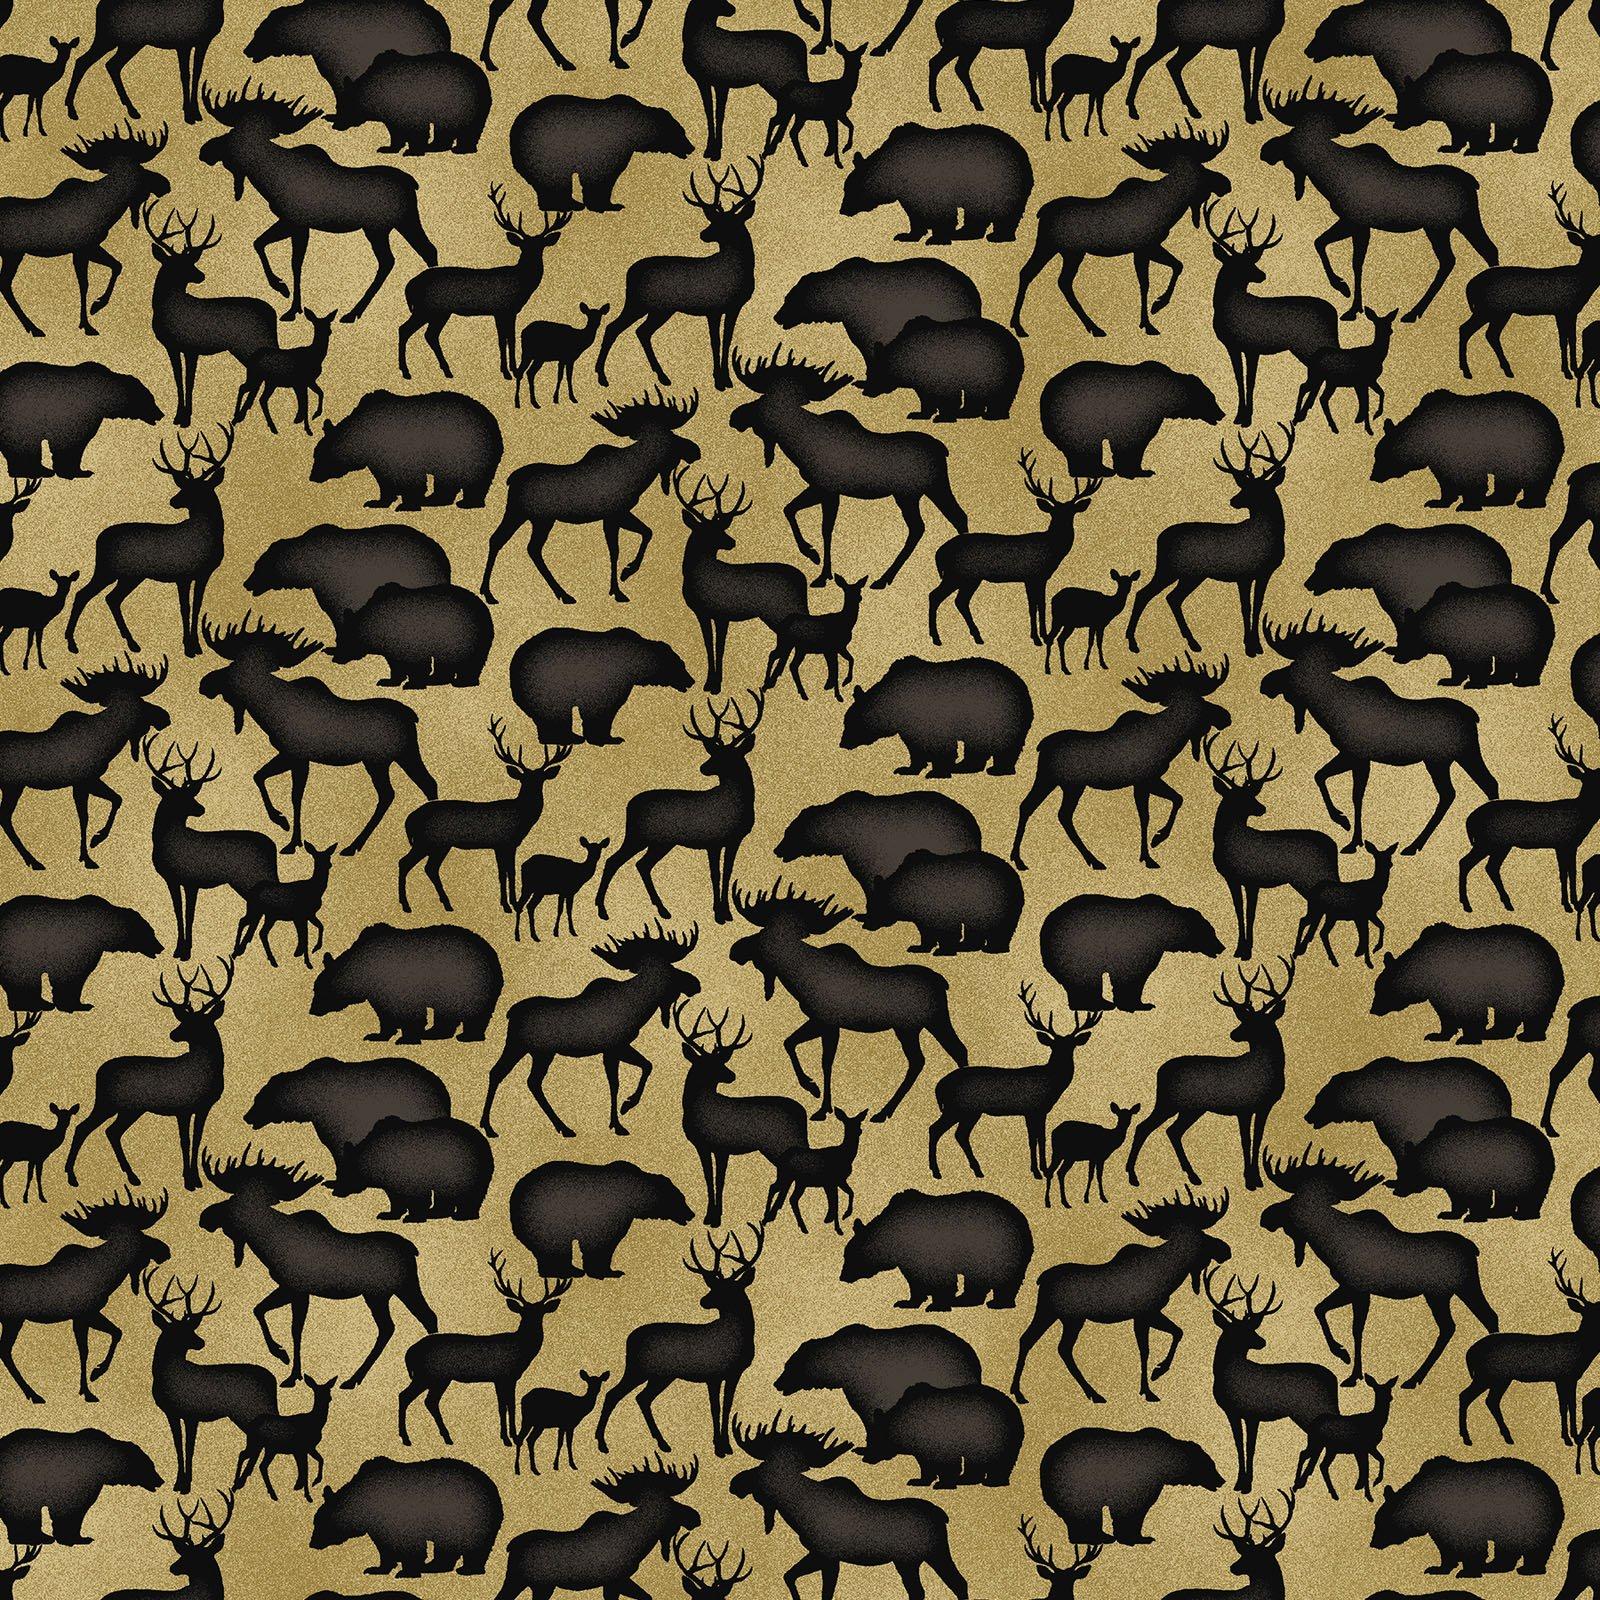 Animal Silhouettes Tan<br/>Benartex 219472